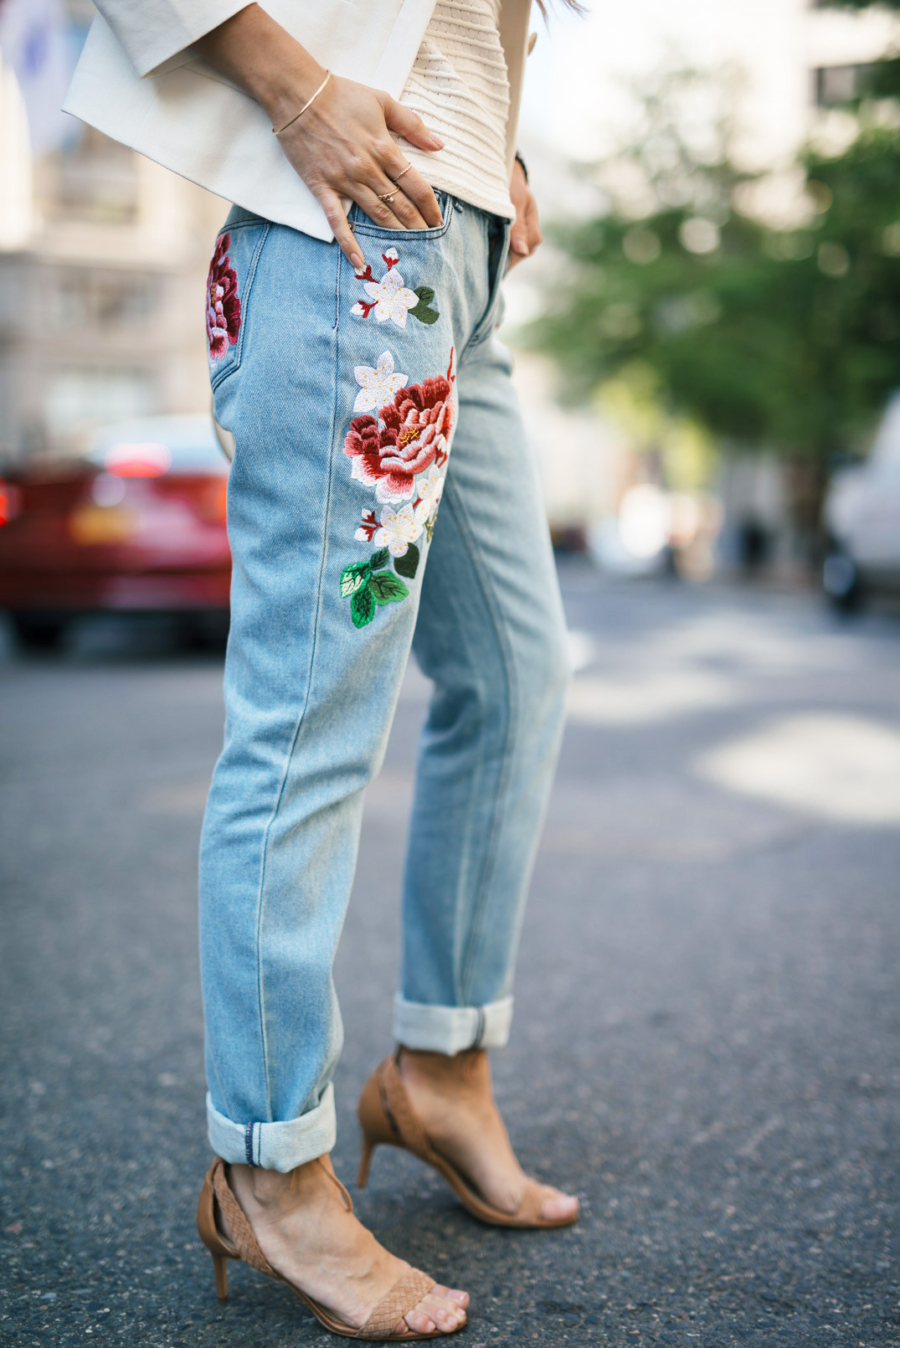 Floral Embroidered Denim Jeans - 7 Pieces That Look Adorable With Flower Embroidery // Notjessfashion.com